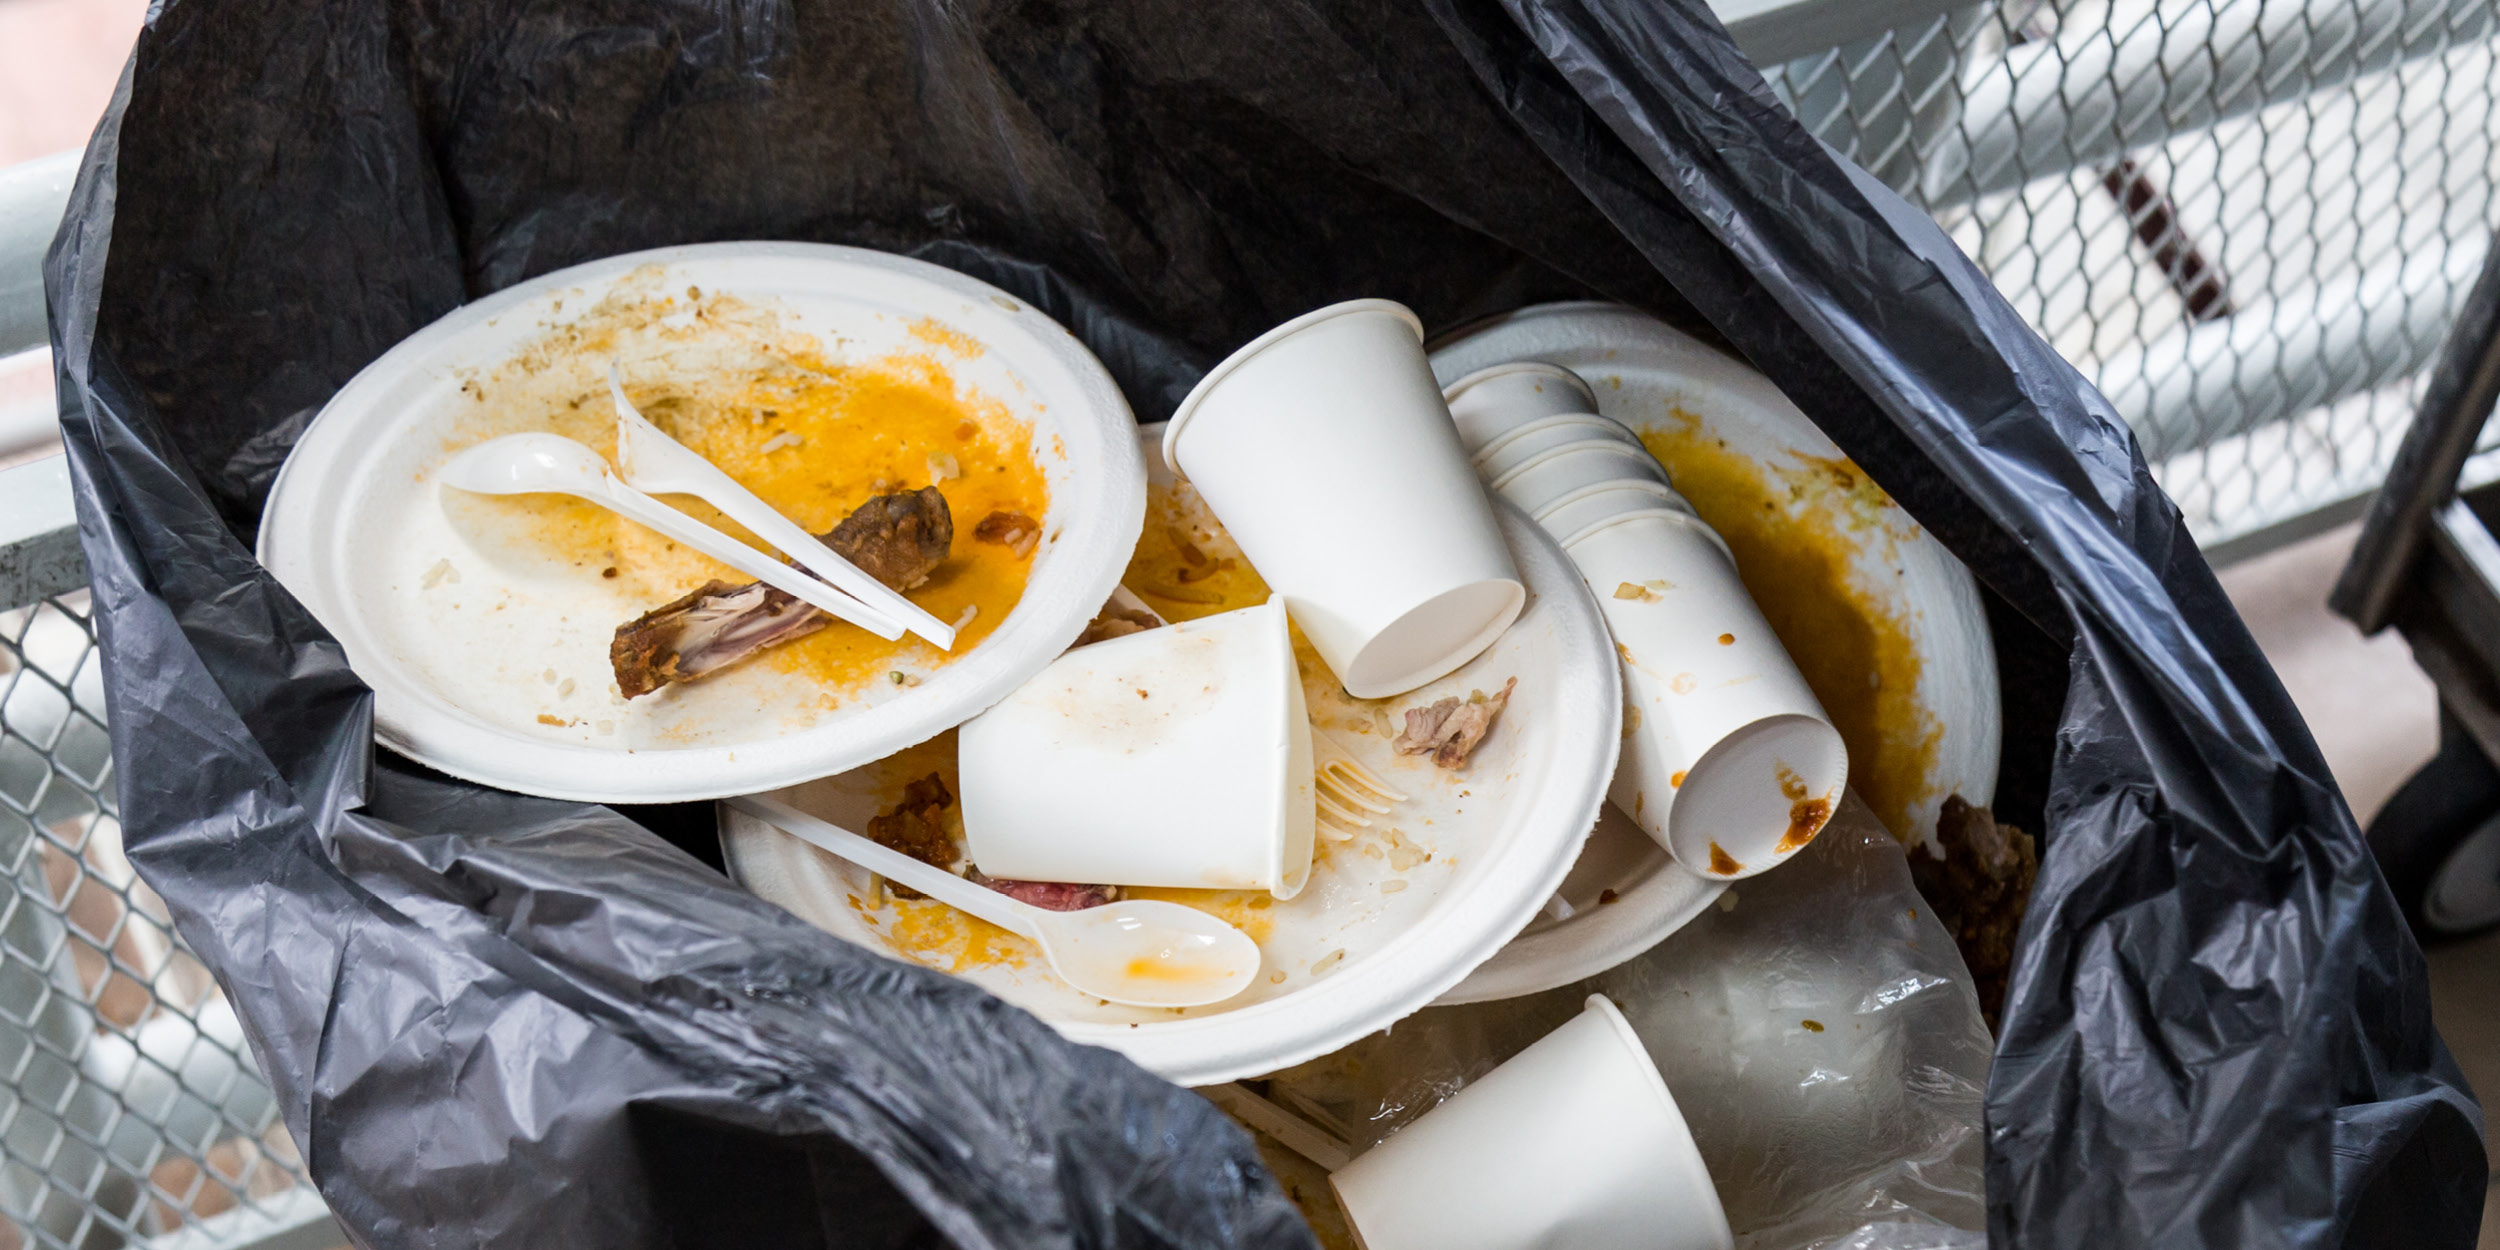 Packaging makes up the largest category of plastic waste